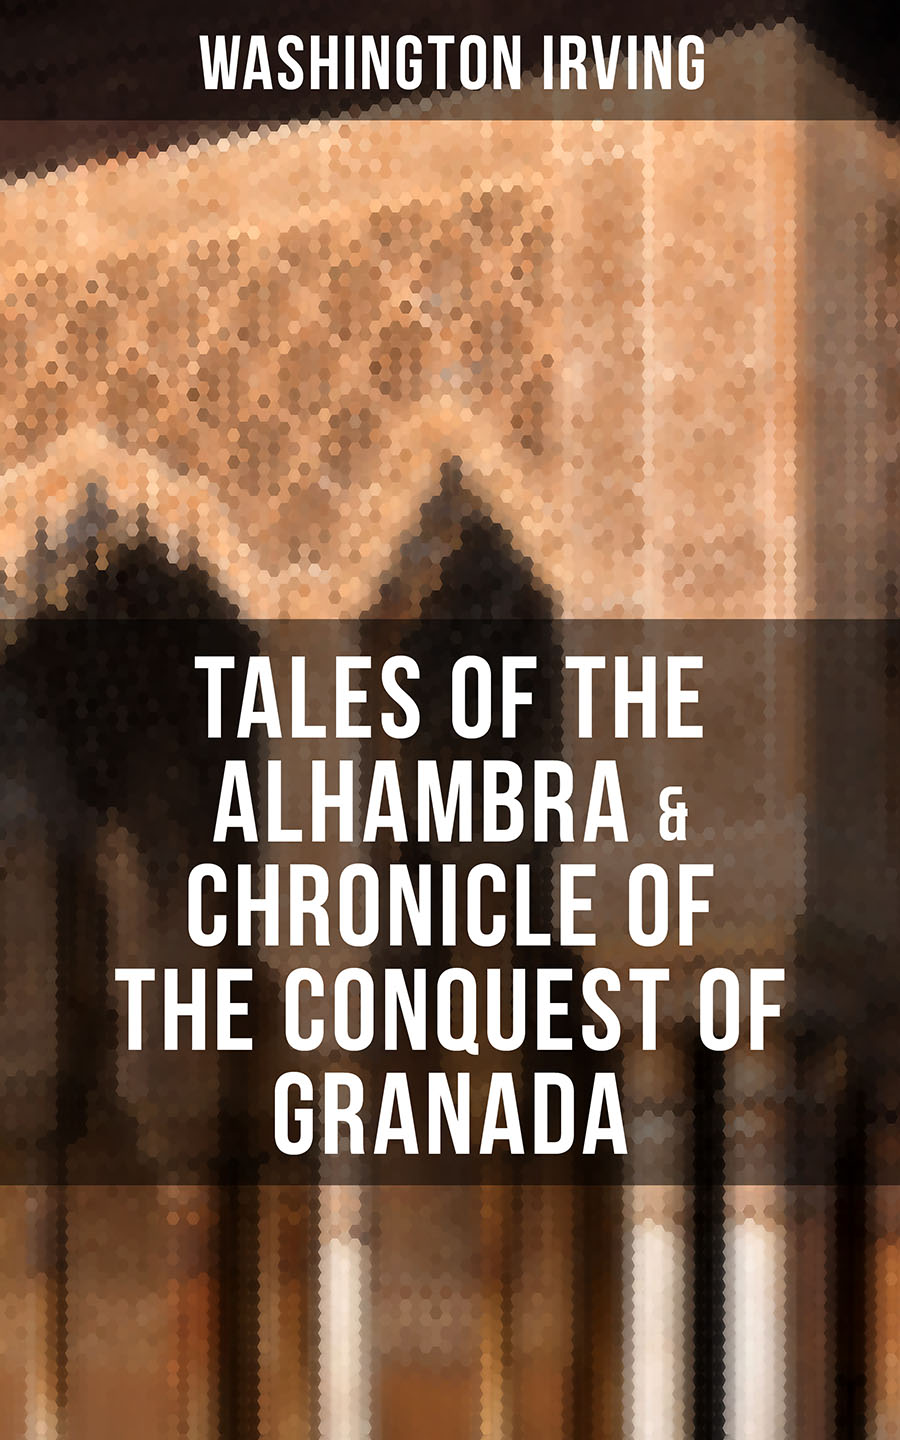 Вашингтон Ирвинг TALES OF THE ALHAMBRA & CHRONICLE OF THE CONQUEST OF GRANADA hawkwind hawkwind the chronicle of the black sword